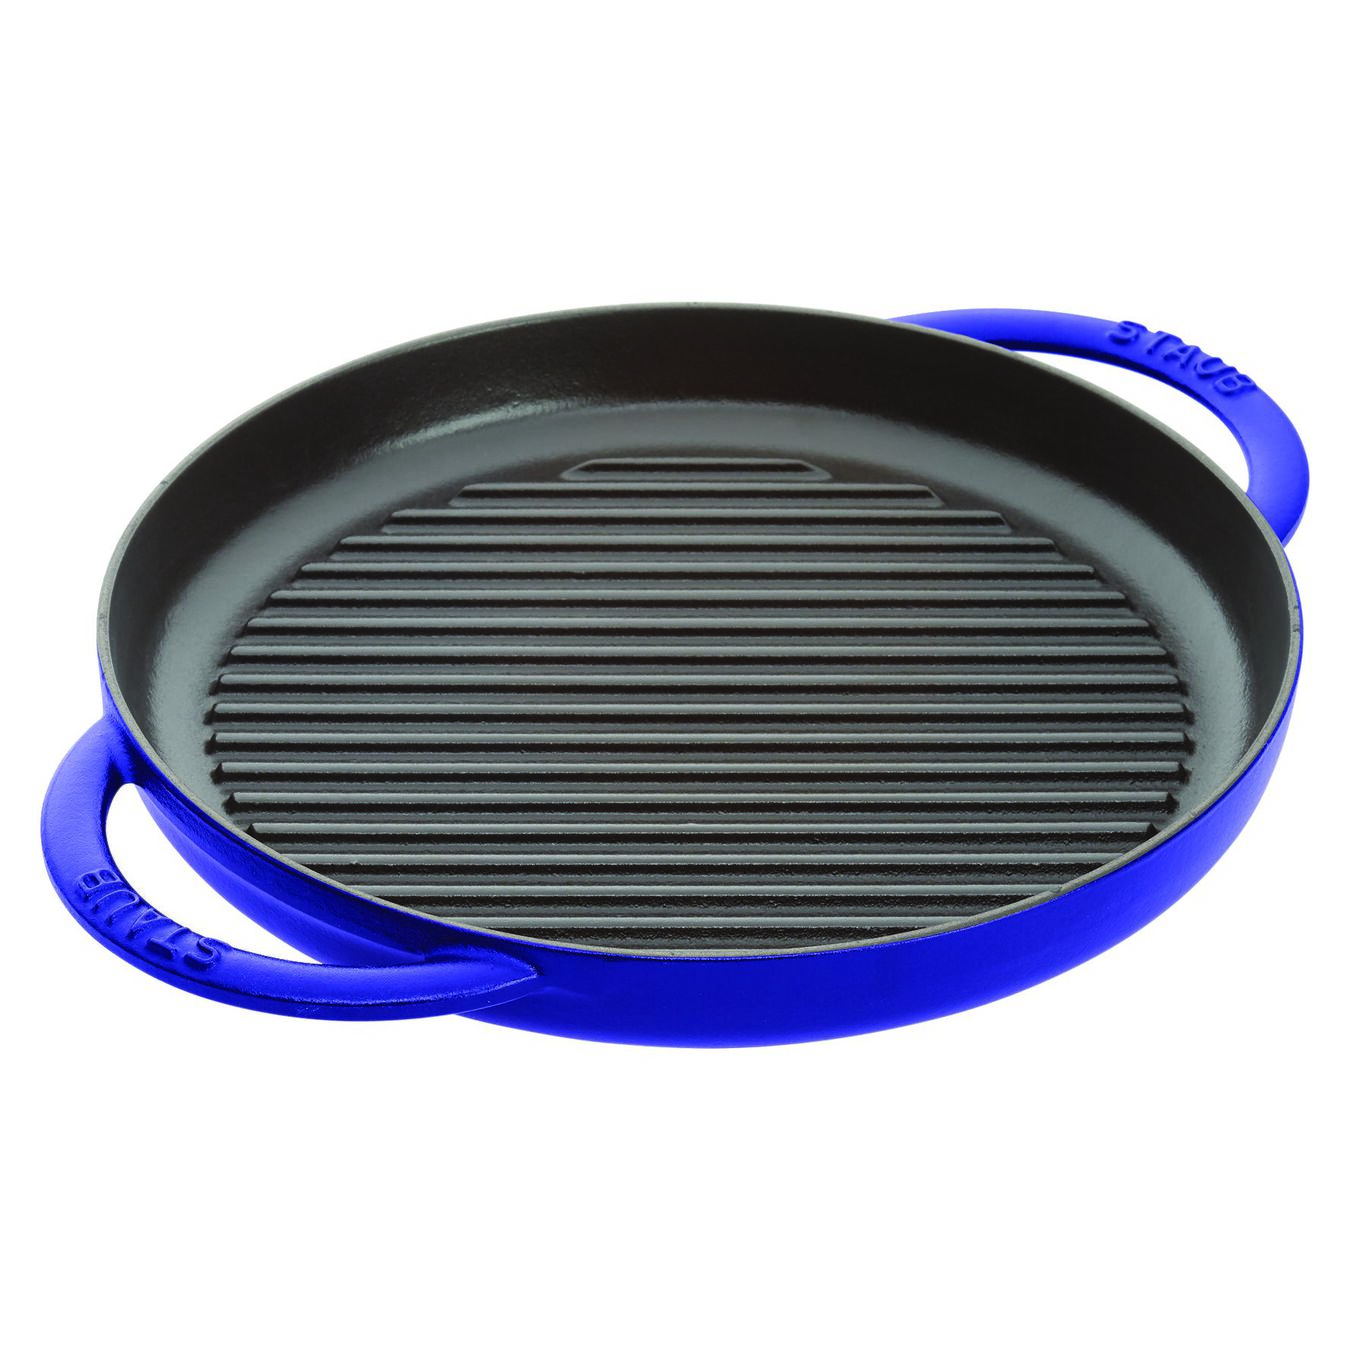 10-inch Pure Grill - Dark Blue,,large 2